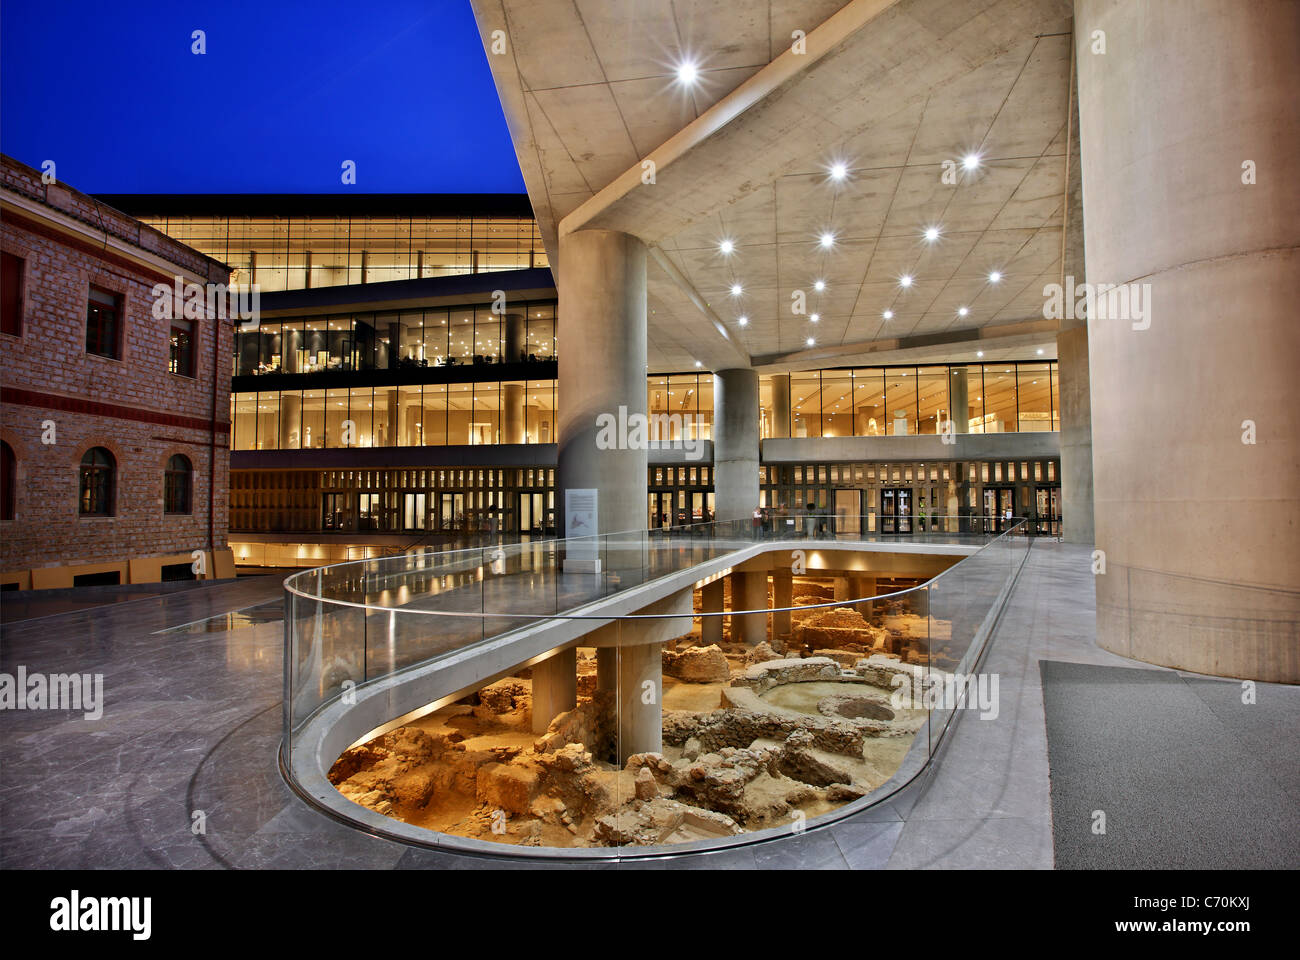 The New Acropolis Museum in the 'blue' hour. Athens, Greece - Stock Image